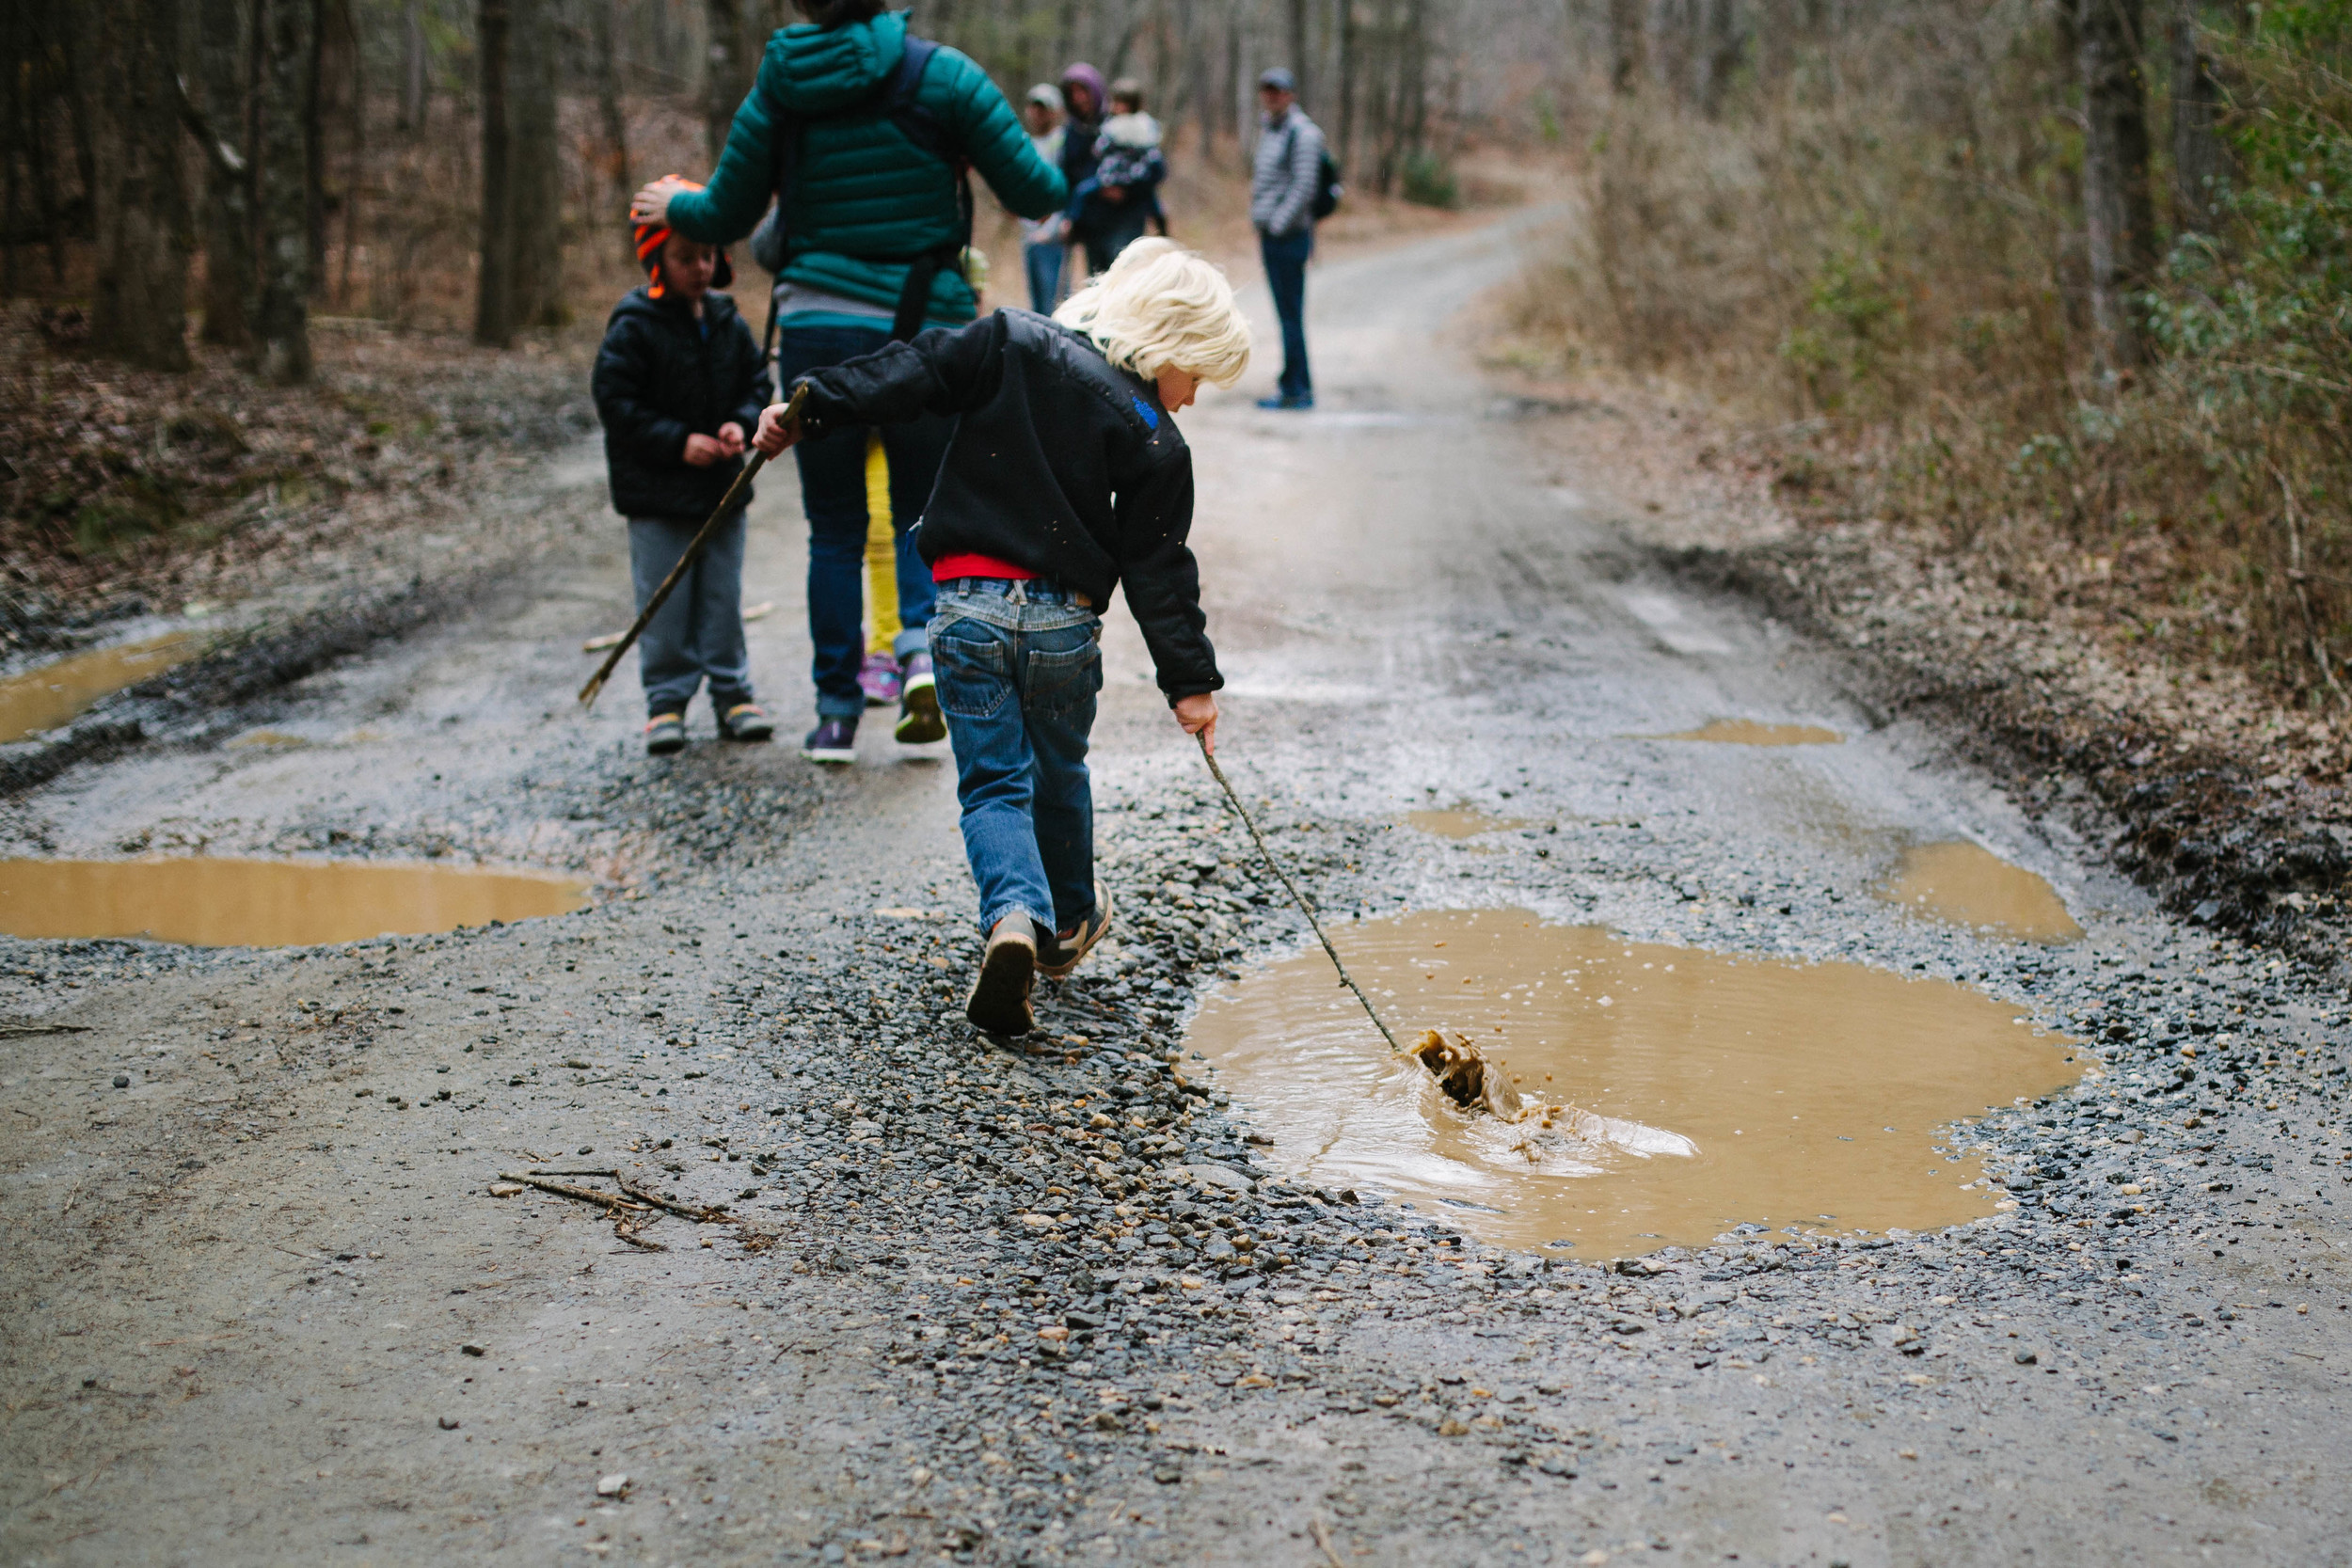 Image of boy running stick through a puddle on a gravel road in a forest